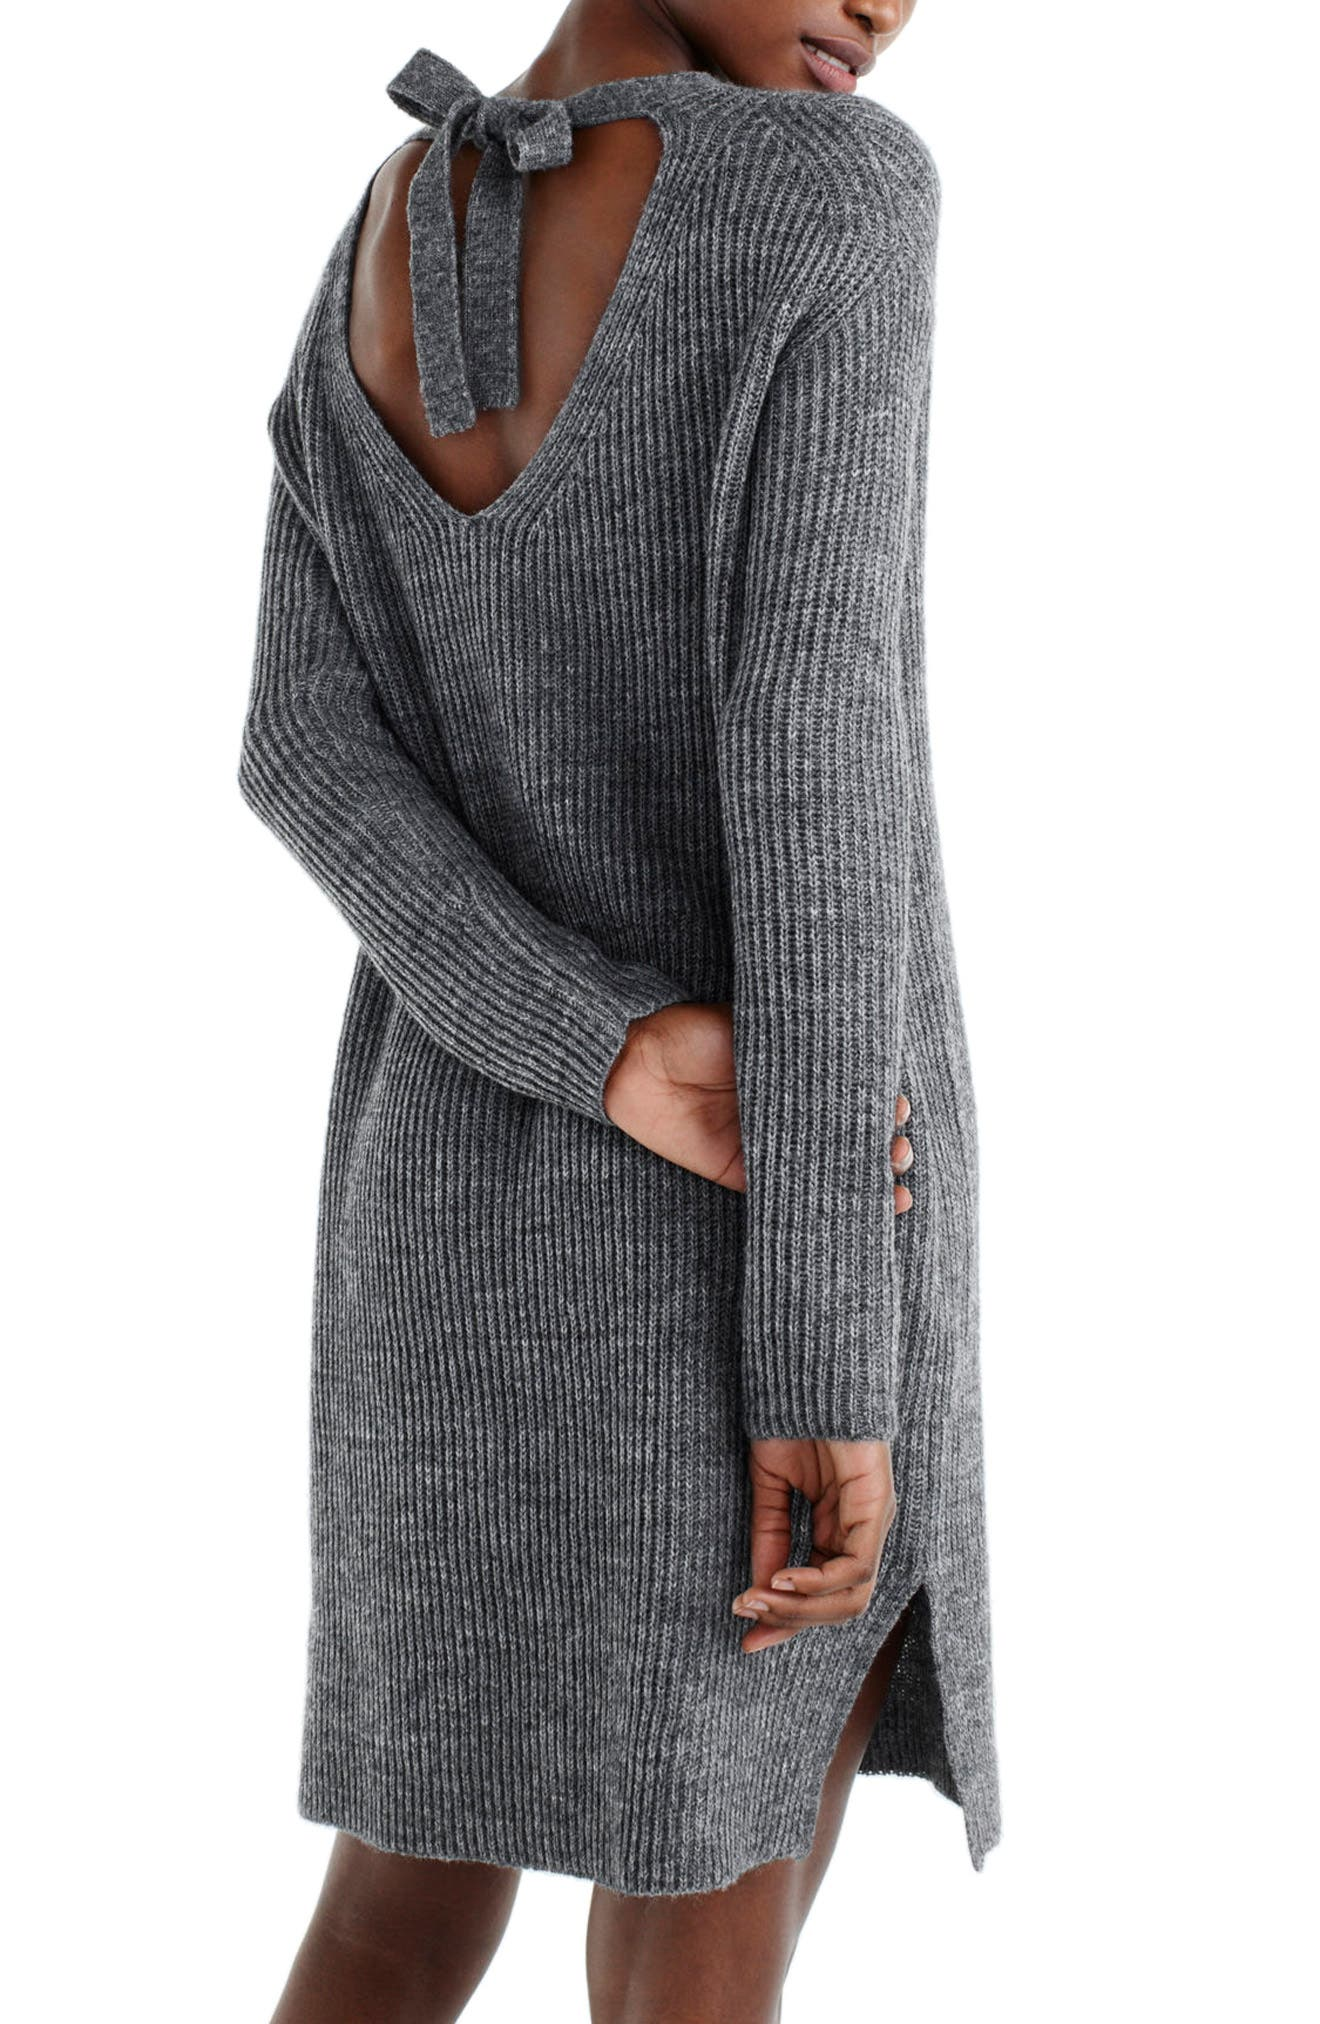 J.Crew Bow Tie Open Back Sweater Dress,                             Alternate thumbnail 2, color,                             Heather Flannel